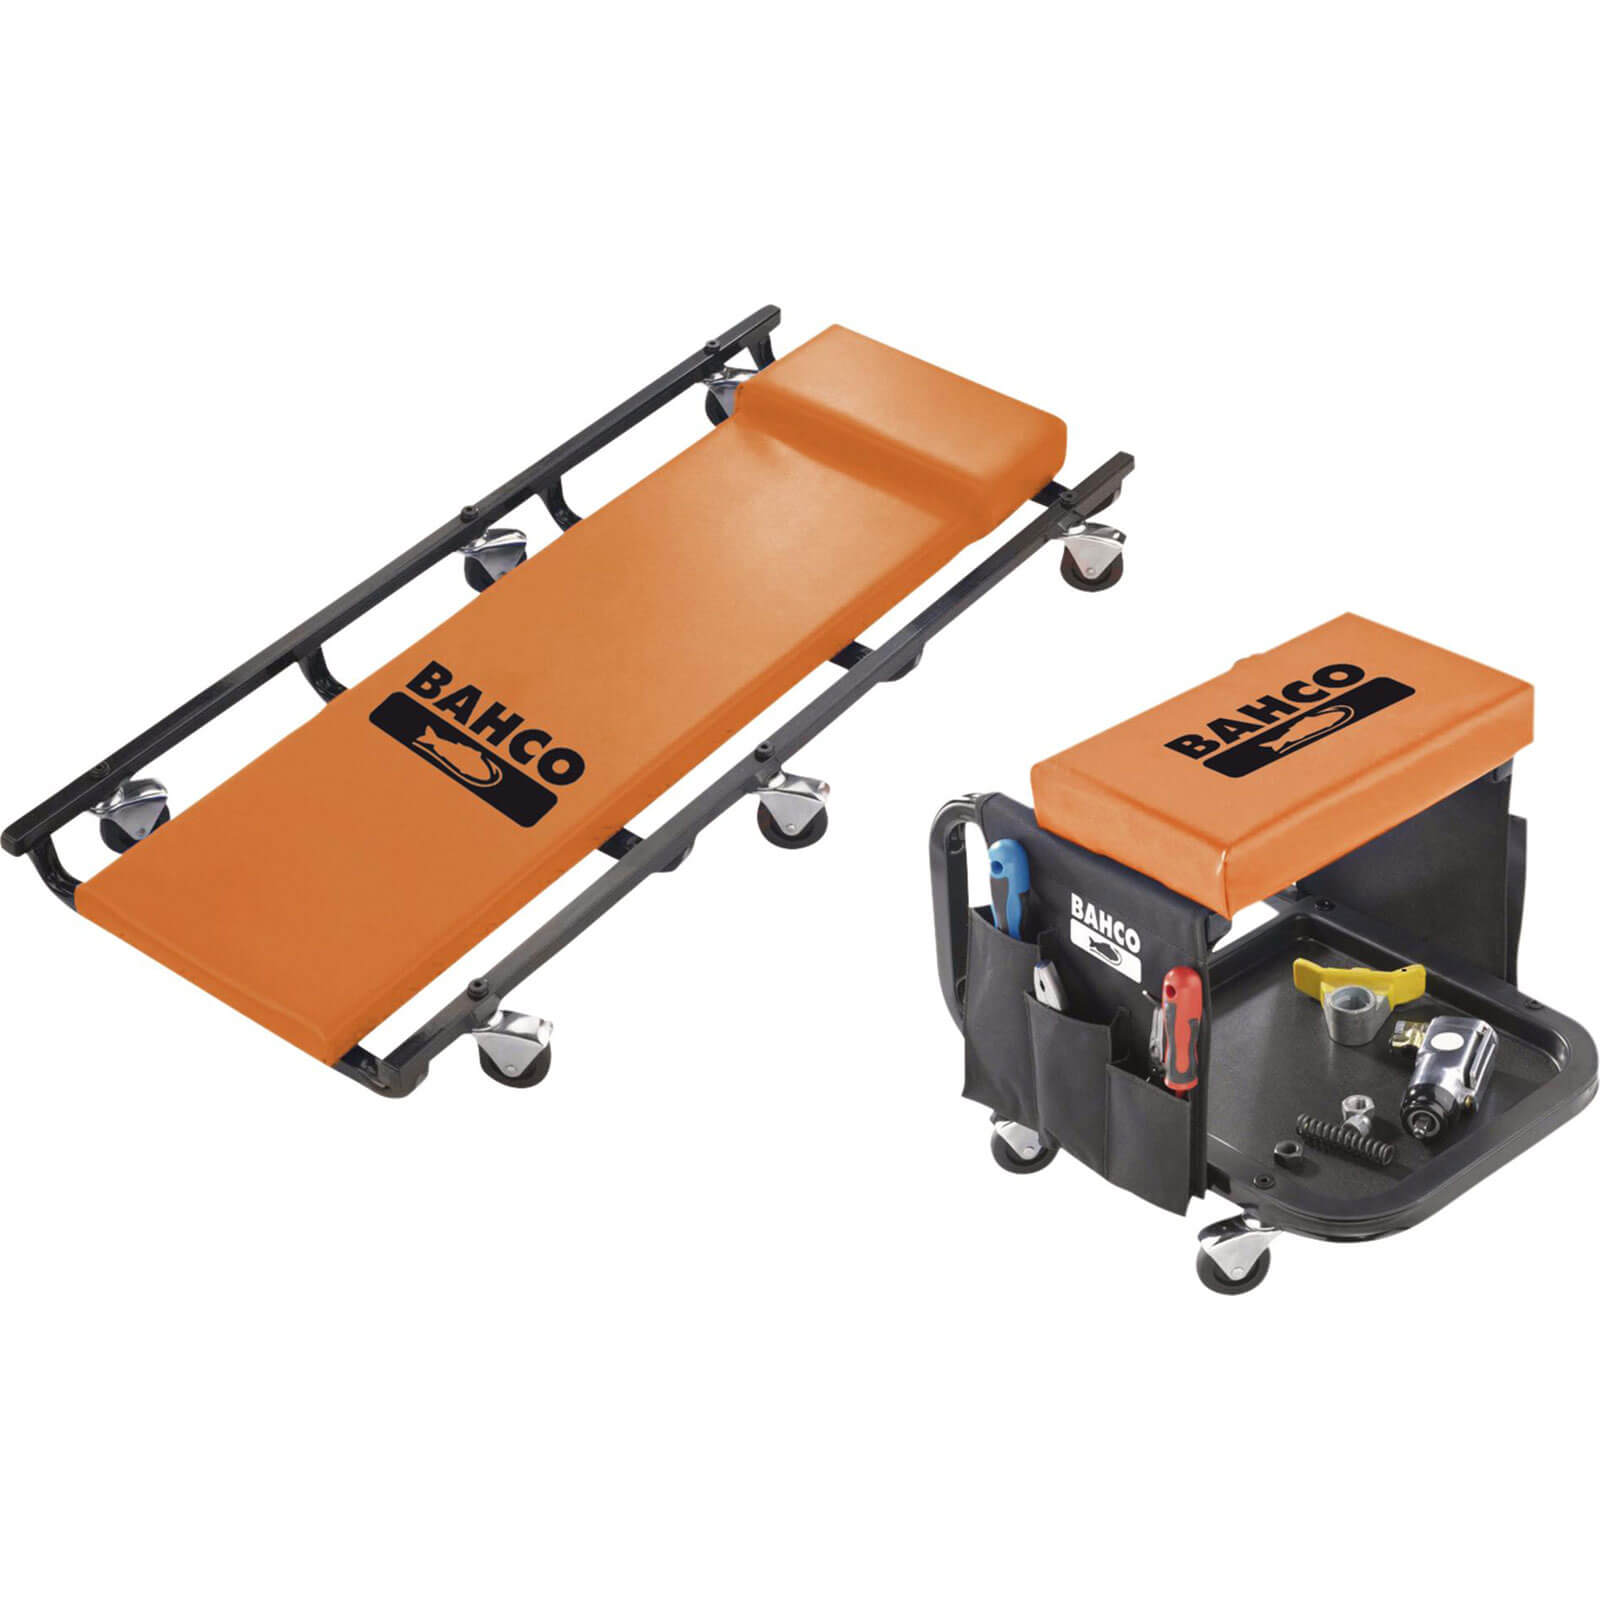 Image of Bahco BLE304 Creeper & Stool Set